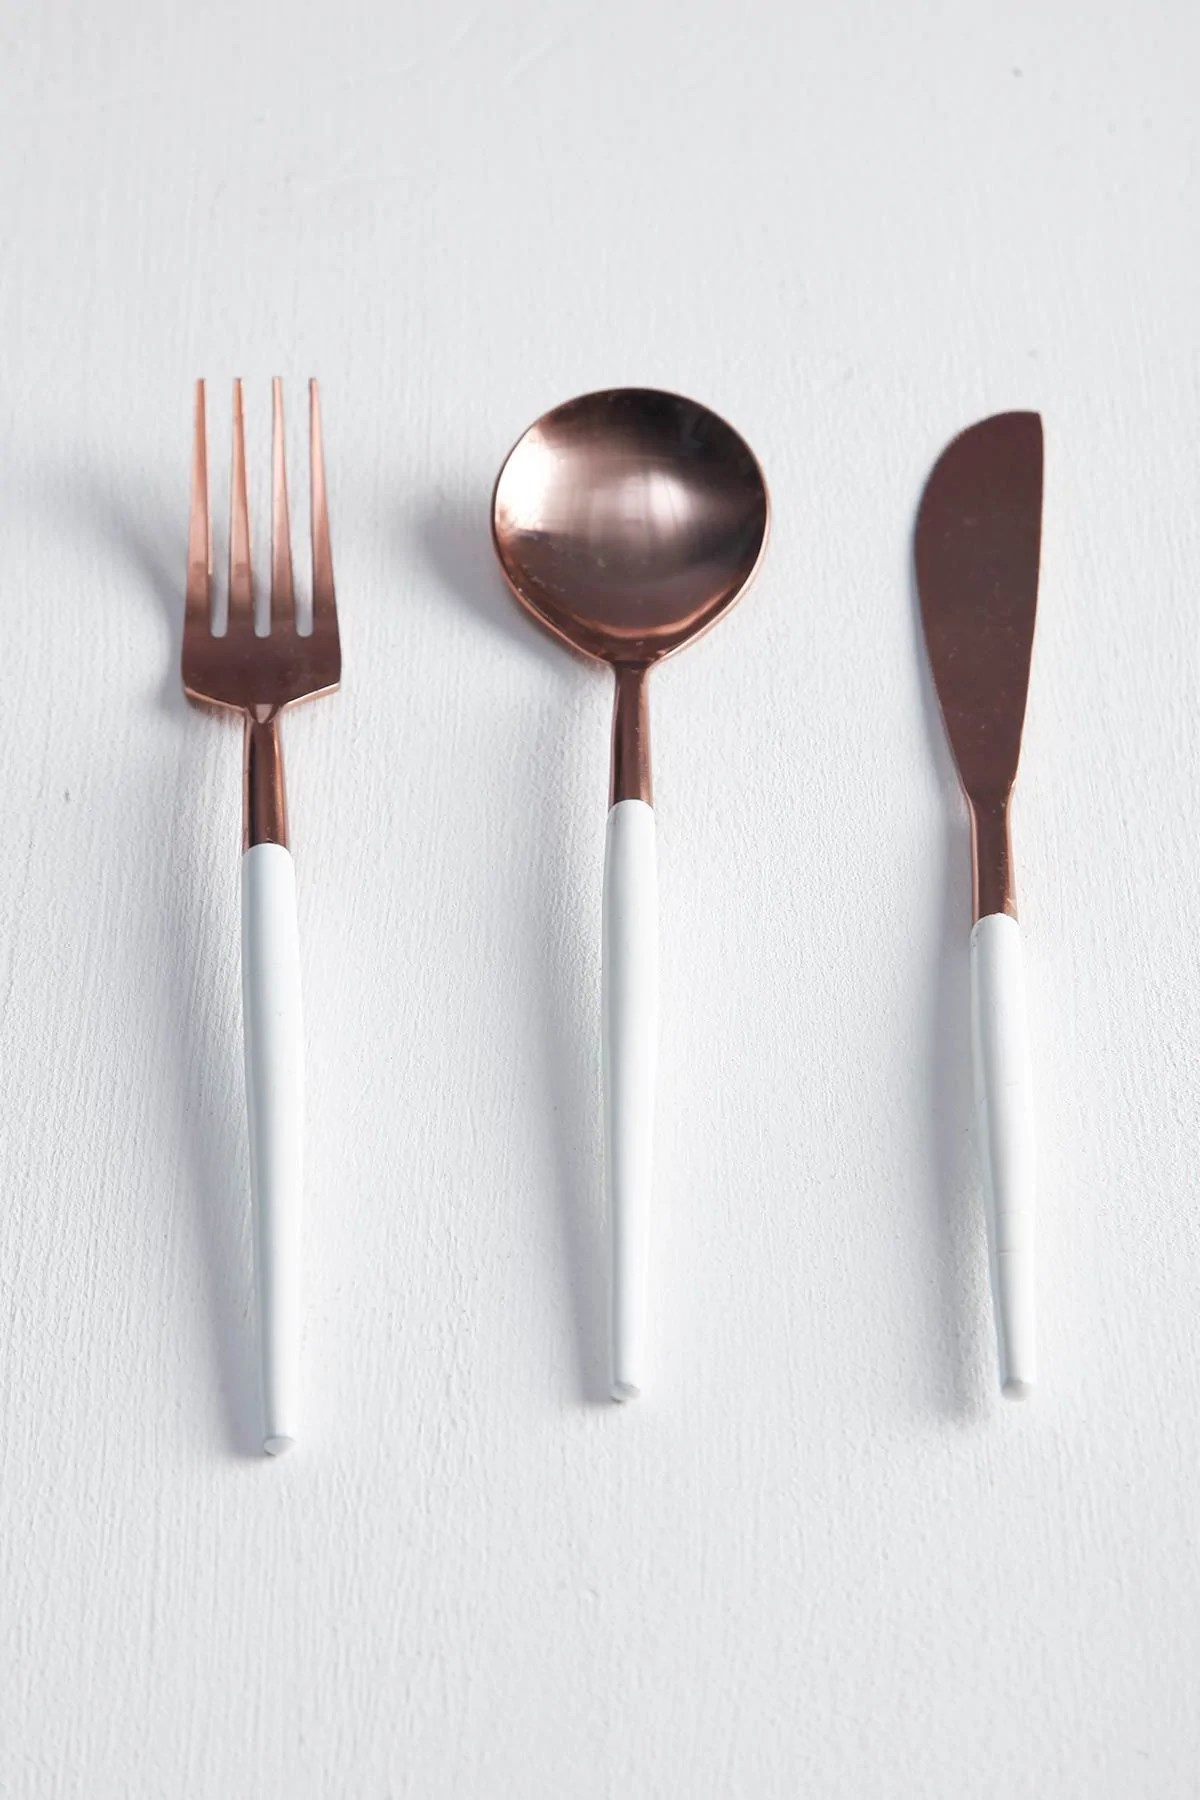 Gold Cutlery Sets Iridescent Rose Gold Cutlery Set Set Of 3 Freedom Tree